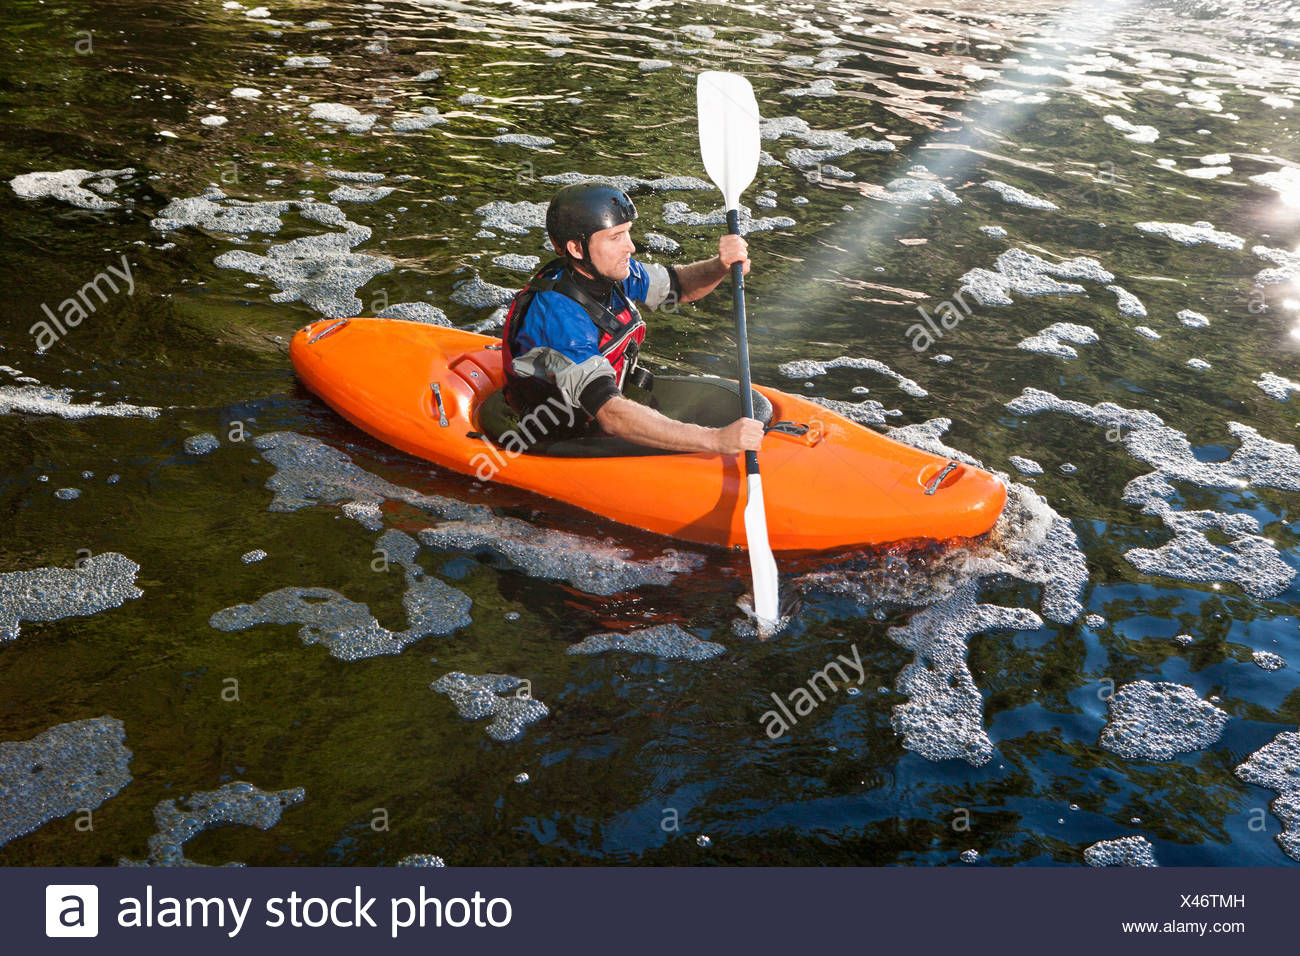 Mid adult man kayaking on peaceful river - Stock Image